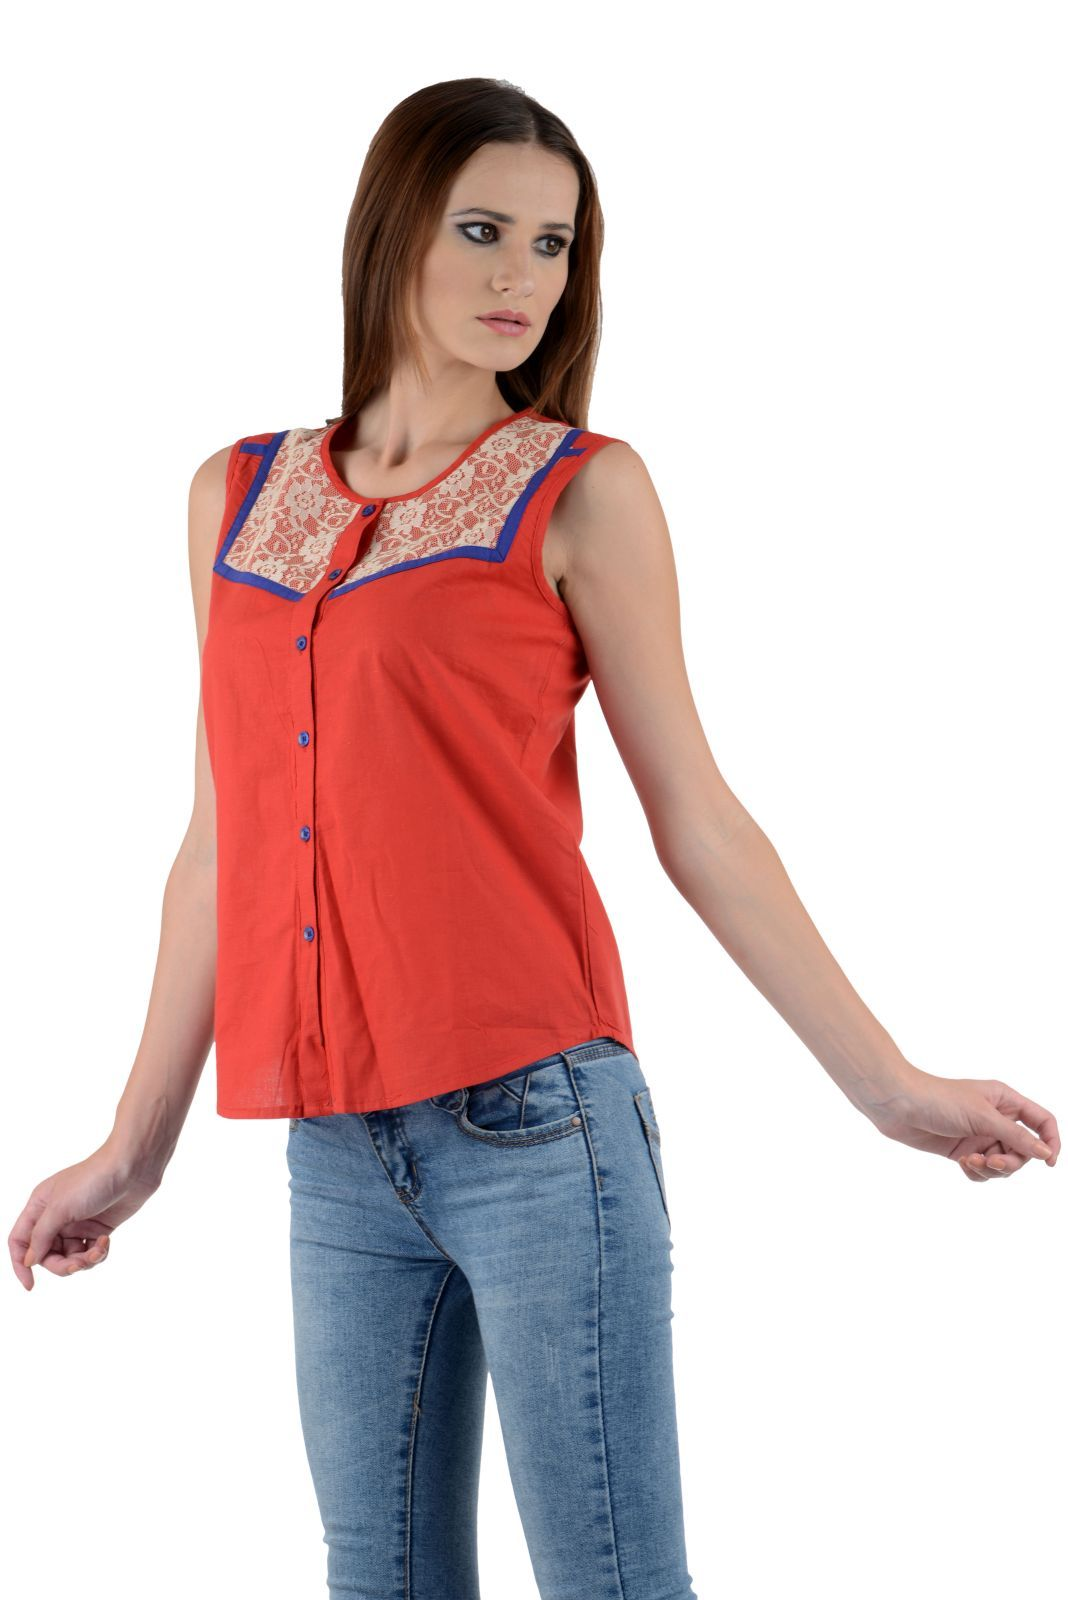 Female dating in kolkata where the stylish tops design